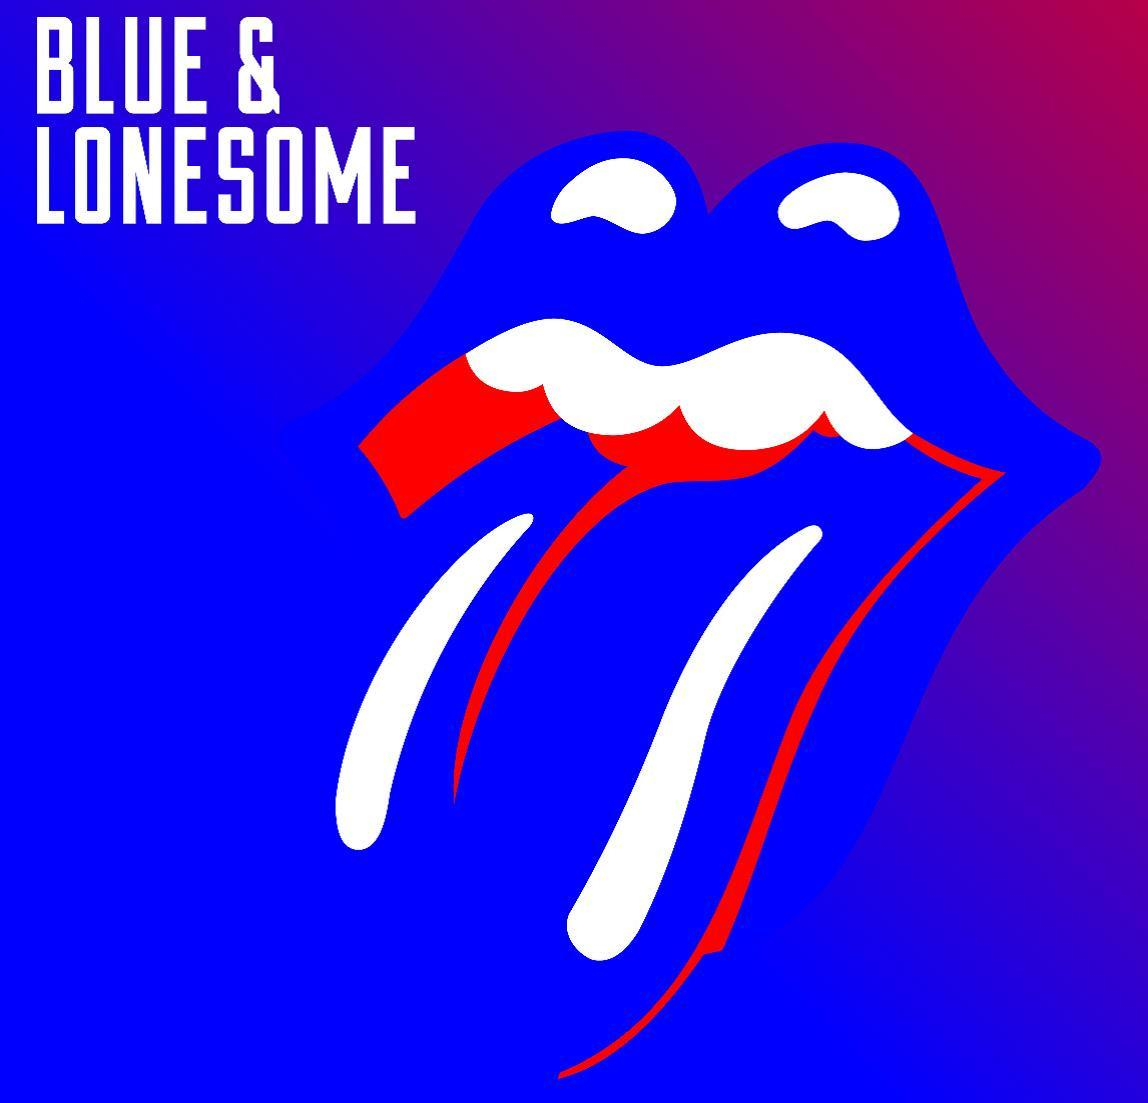 THE ROLLING STONES - BLUE & LONESOME - THE ROLLING STONES - CD -